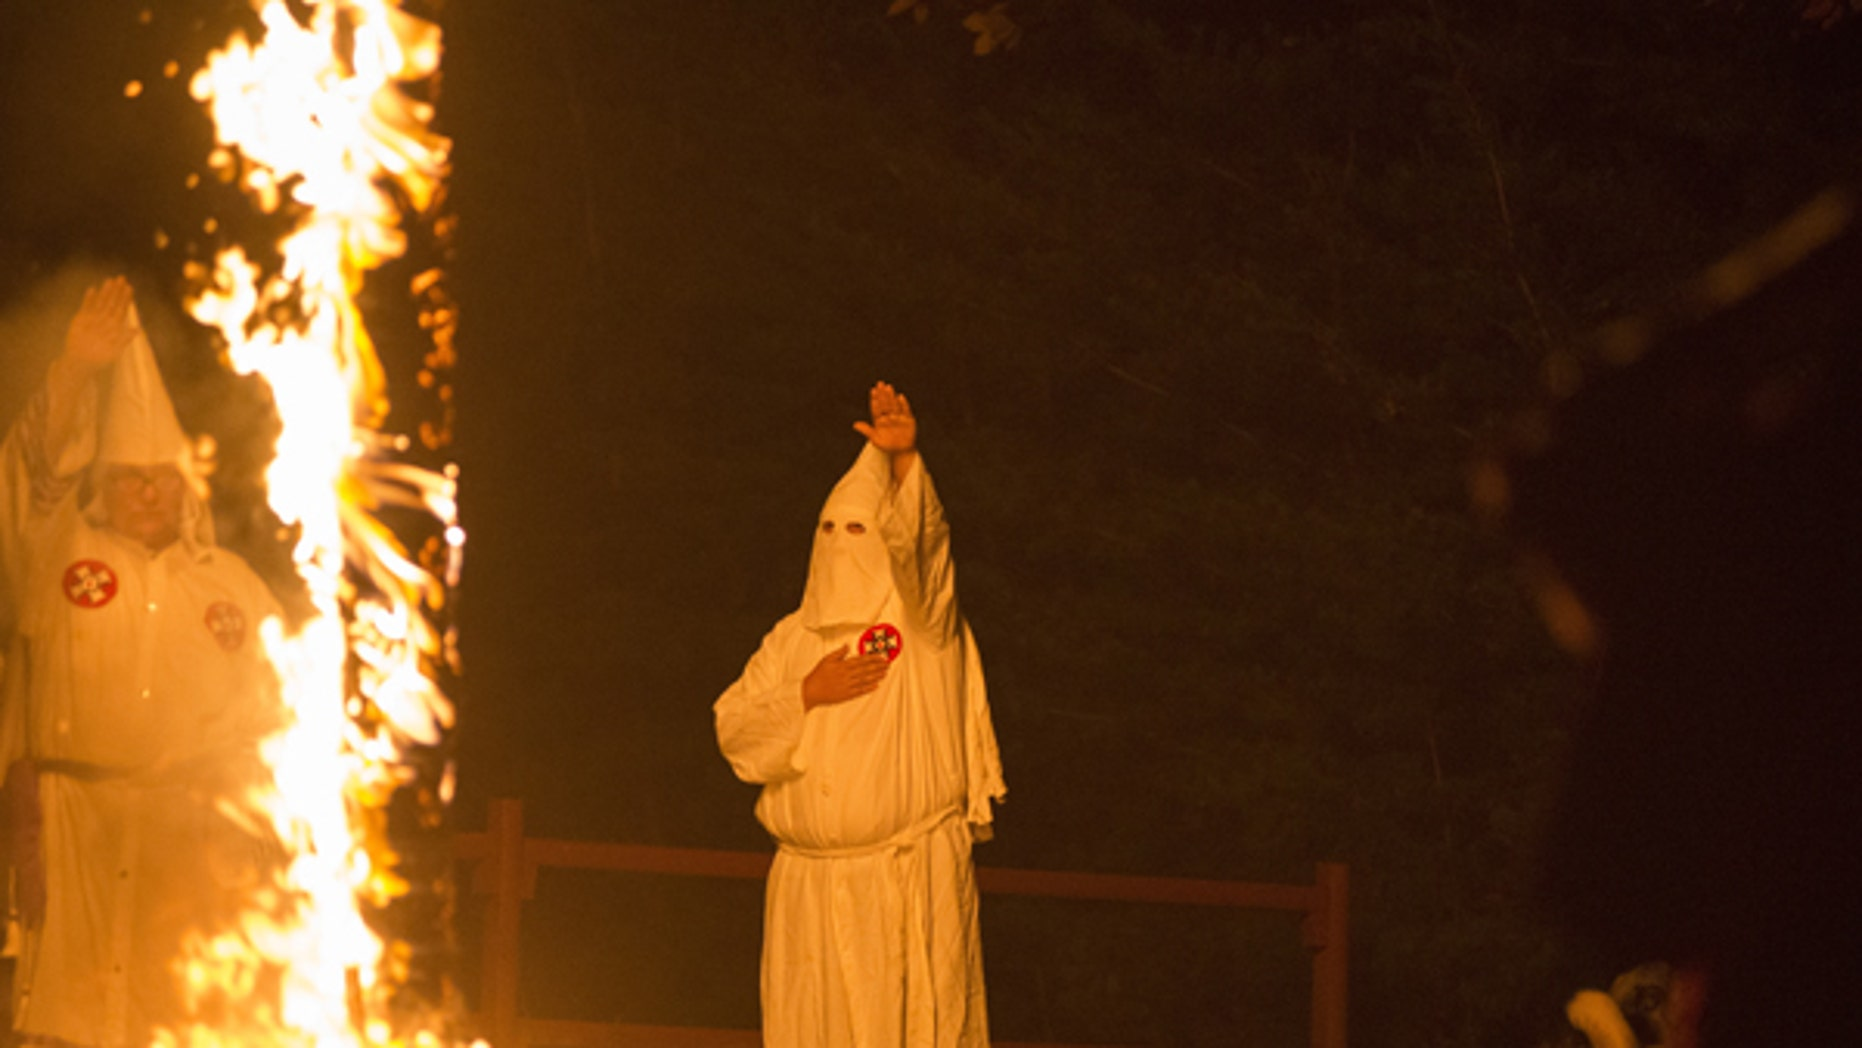 A member of the Ku Klux Klan salutes a lit cross during a cross lighting ceremony at a private residence in Henry County, Virginia, October 11, 2014. The Ku Klux Klan, which had about 6 million members in the 1920s, now has some 2,000 to 3,000 members nationally in about 72 chapters, or klaverns, according to the Southern Poverty Law Center, an organization that monitors extremist groups.  REUTERS/Johnny Milano